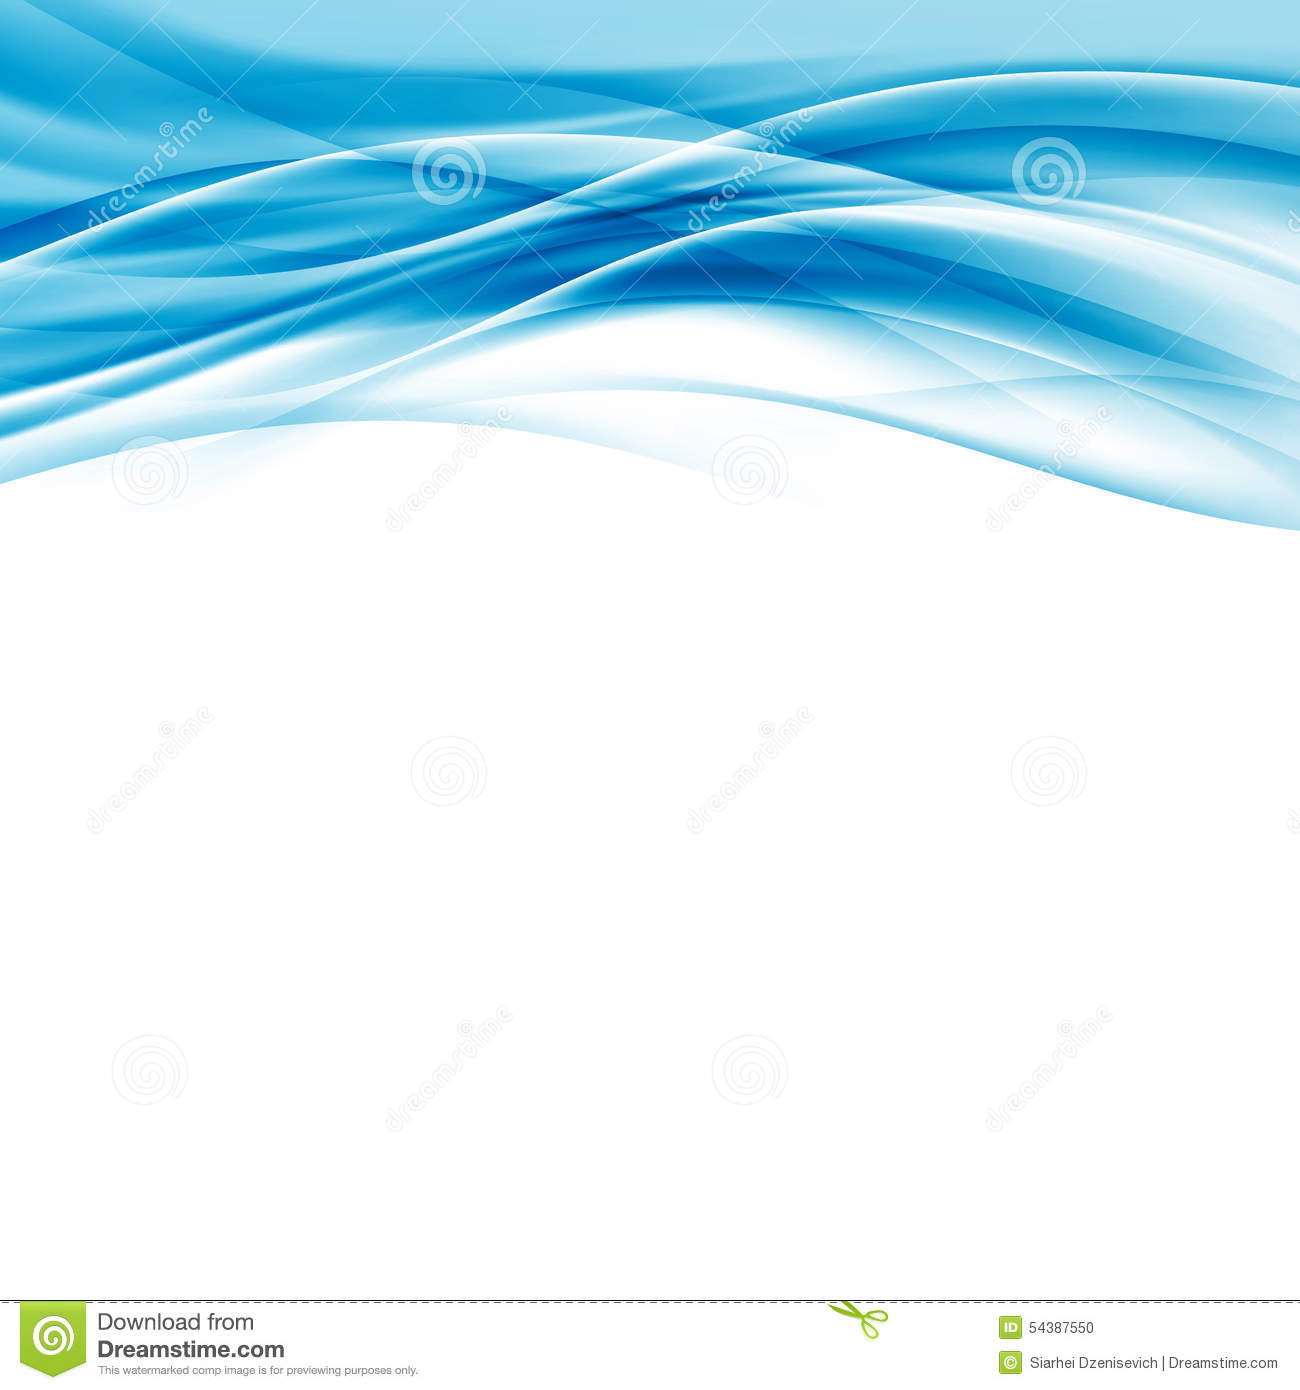 Contemporary abstract blue wave border hi-tech modern background card ...